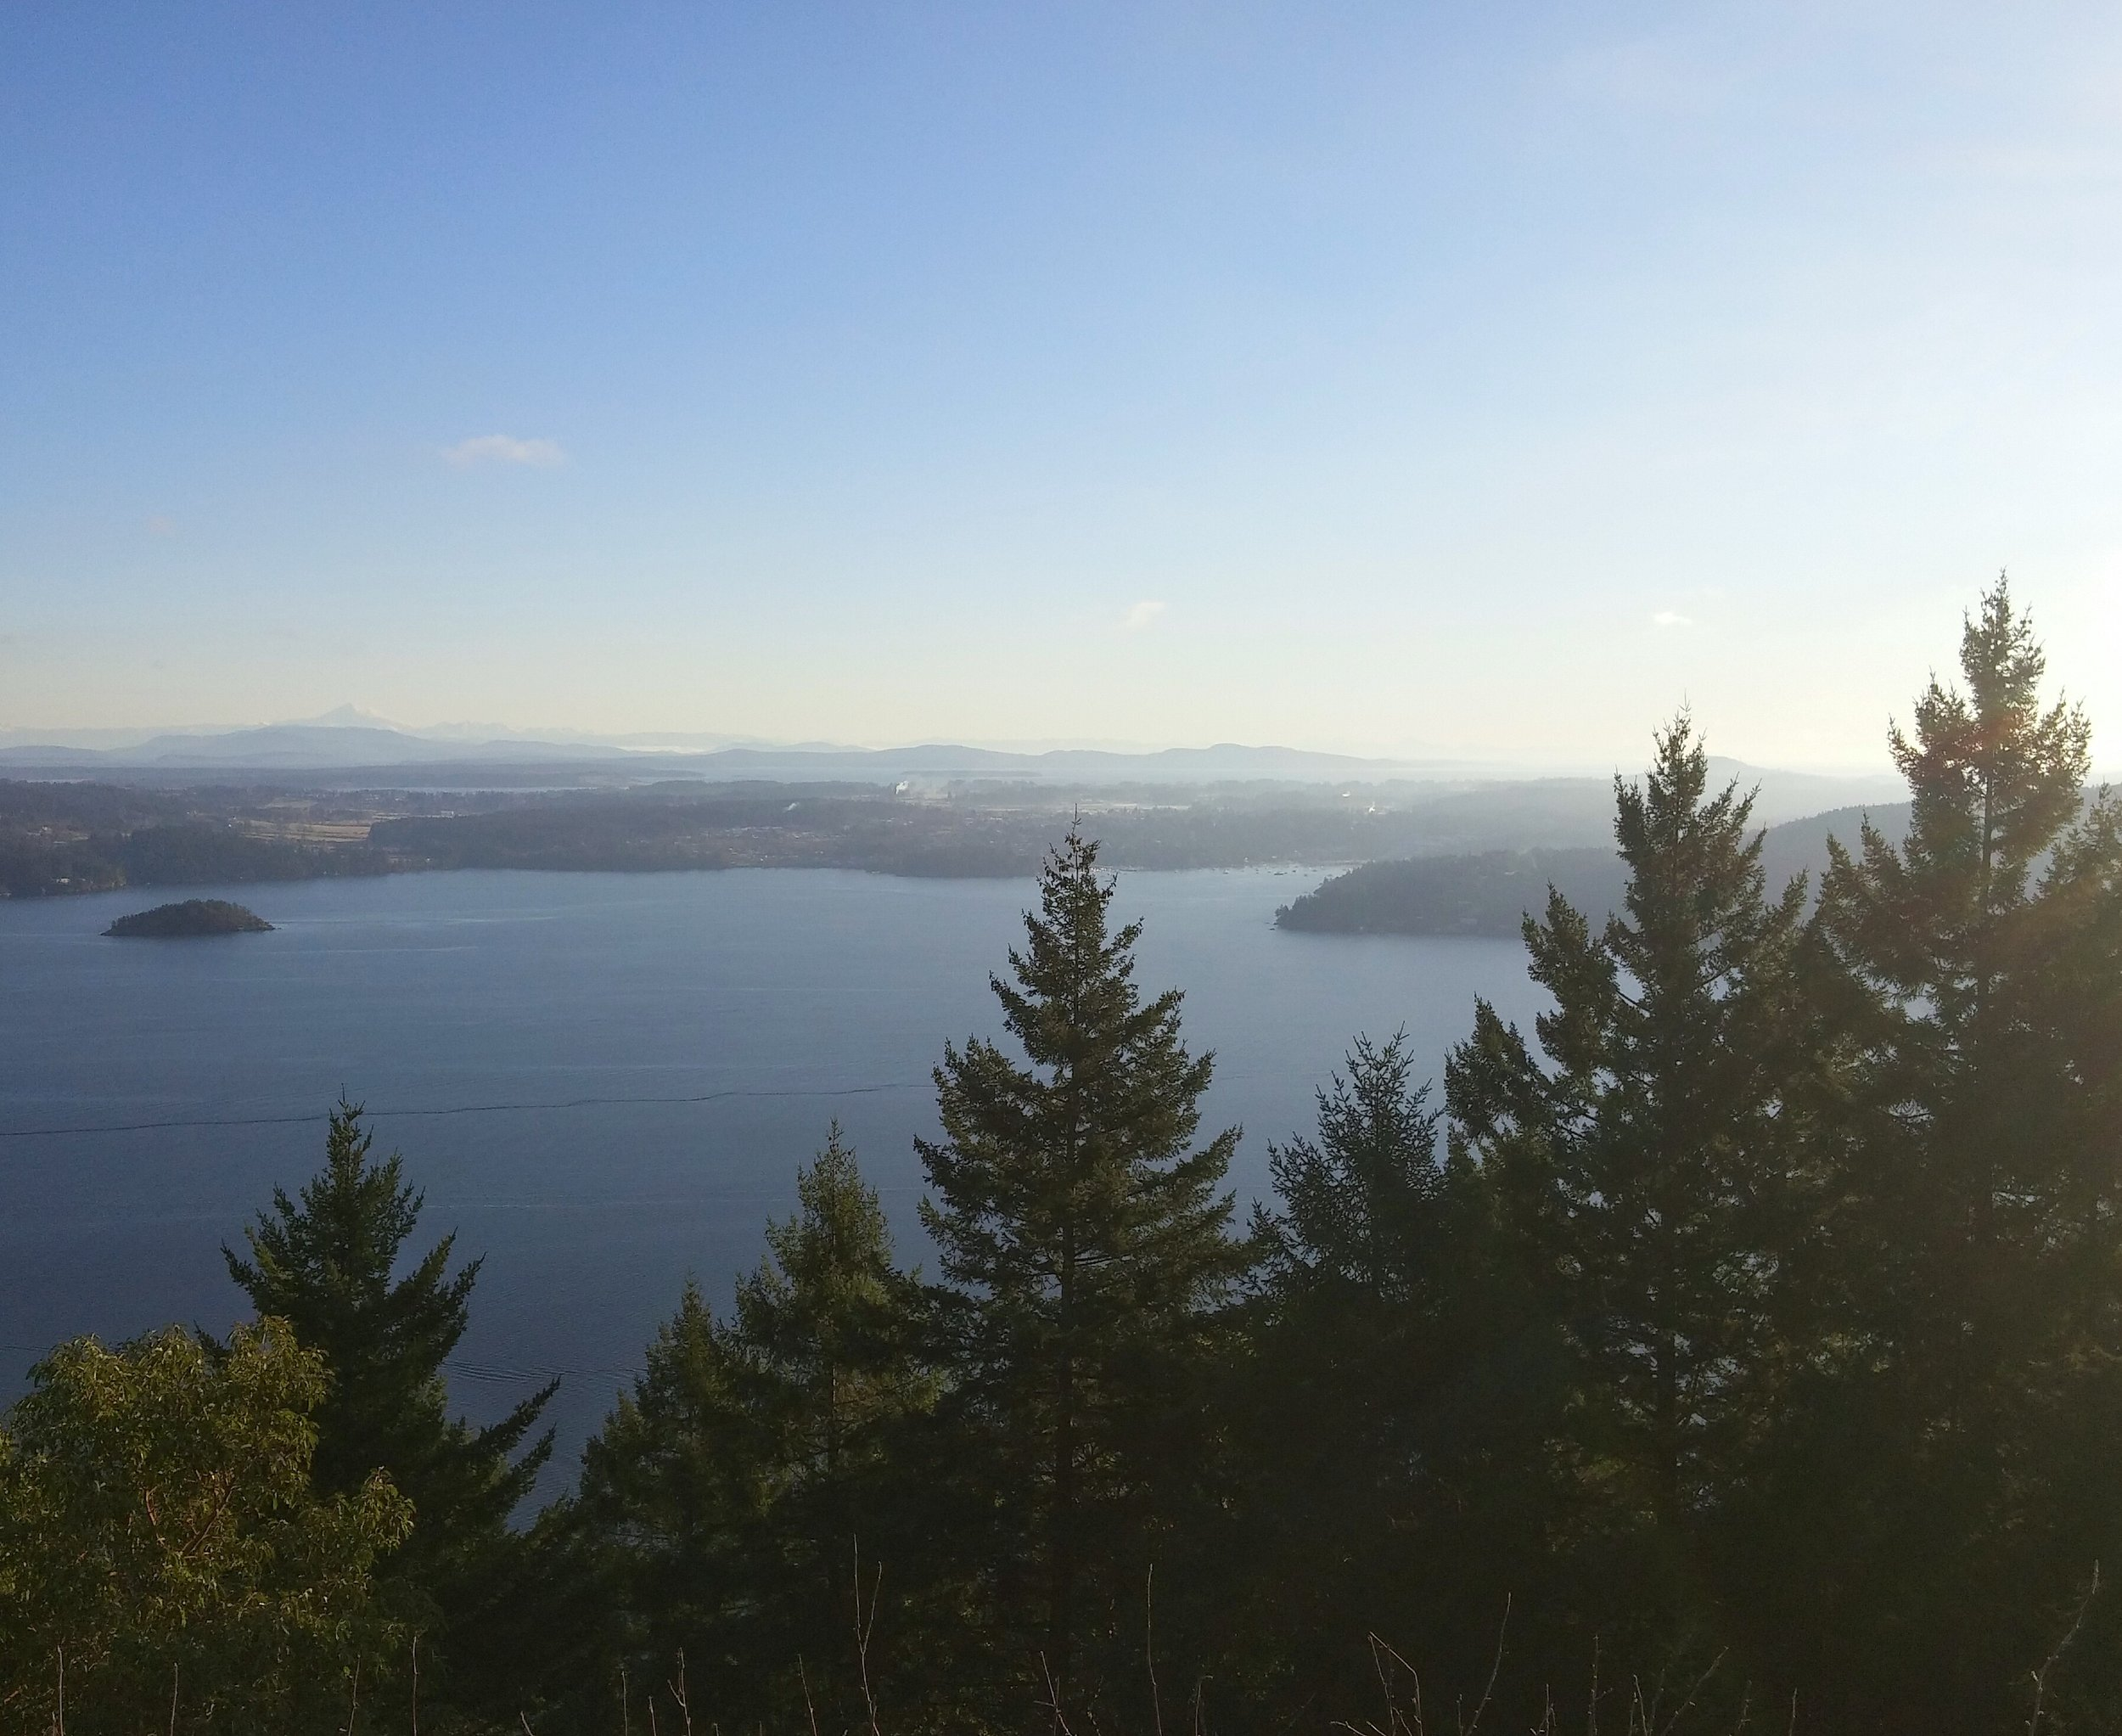 Driving up-Island on the Malahat, you can stop at any lookout point and view all of the Saanich Peninsula and the Bay.